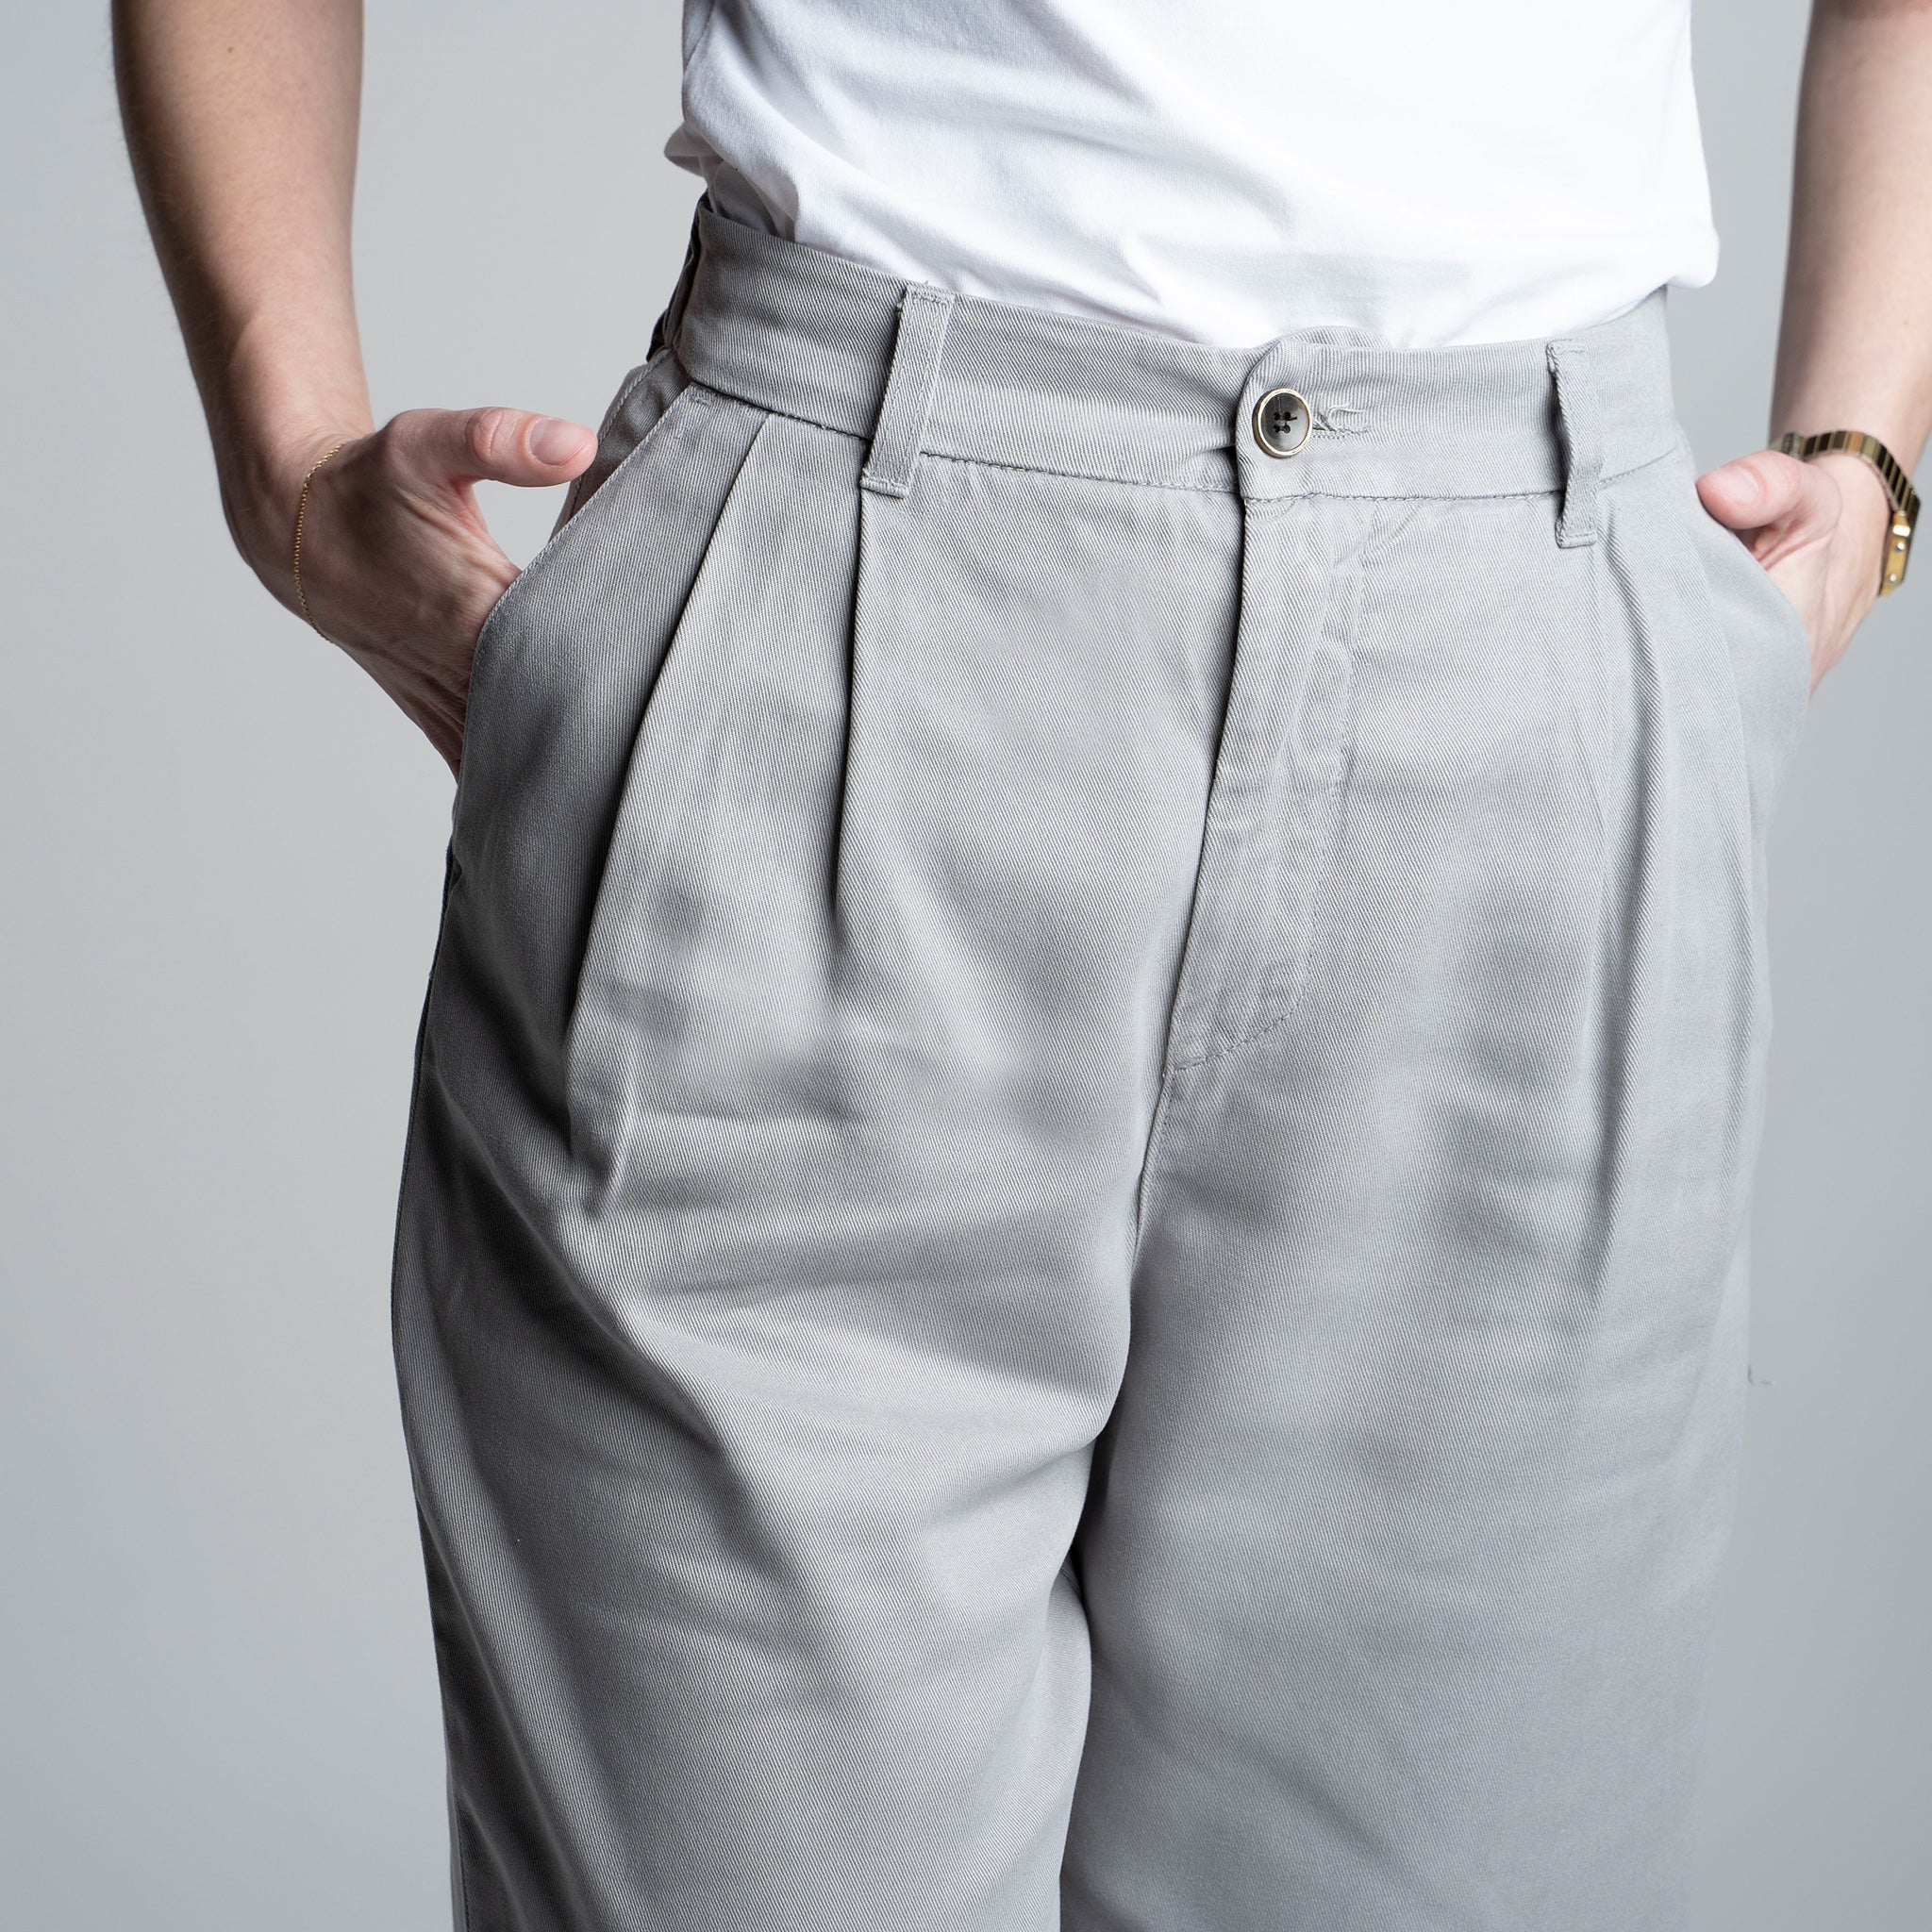 Tencel Pants - Slacks cinza